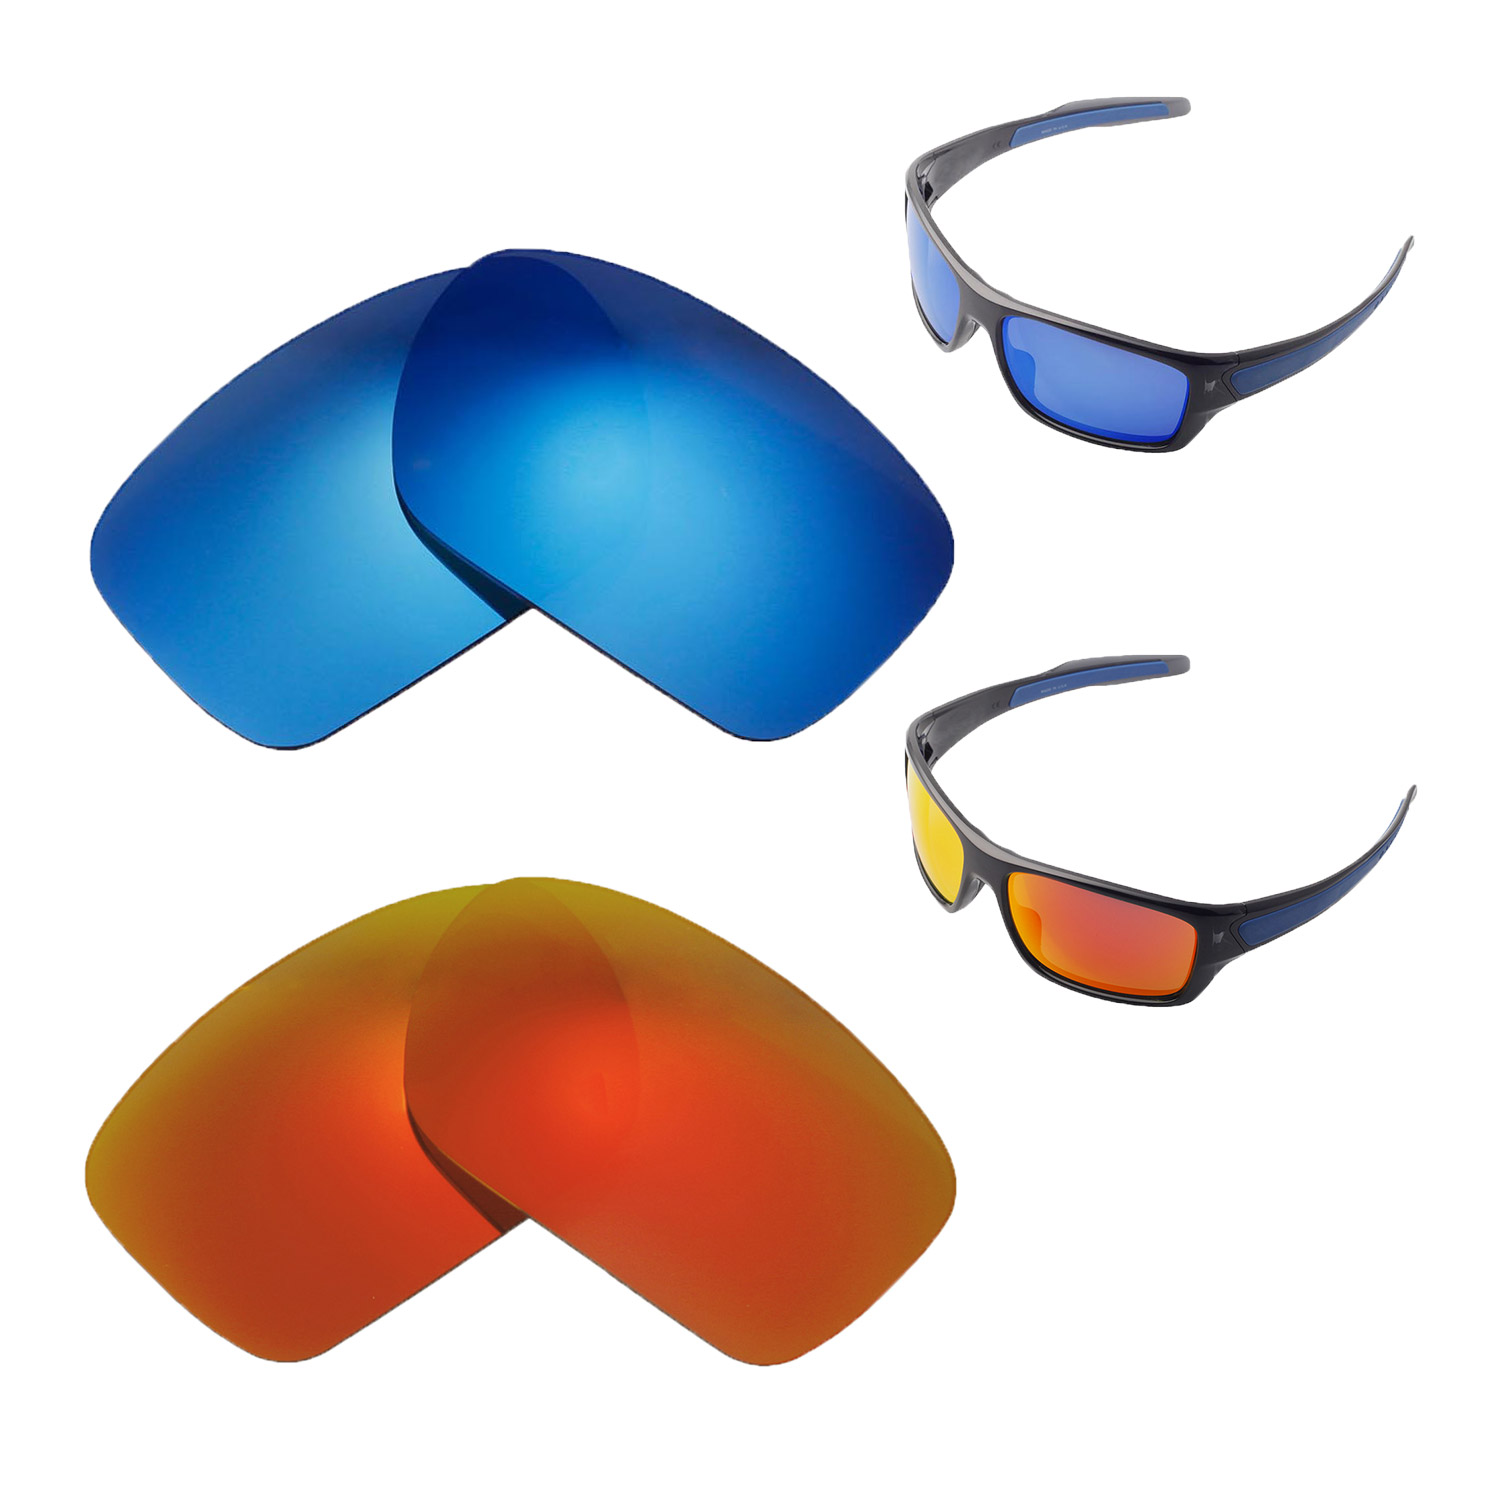 c04b4dd684 Details about Walleva Polarized Fire Red + Ice Blue Lenses For Oakley  Turbine Sunglasses